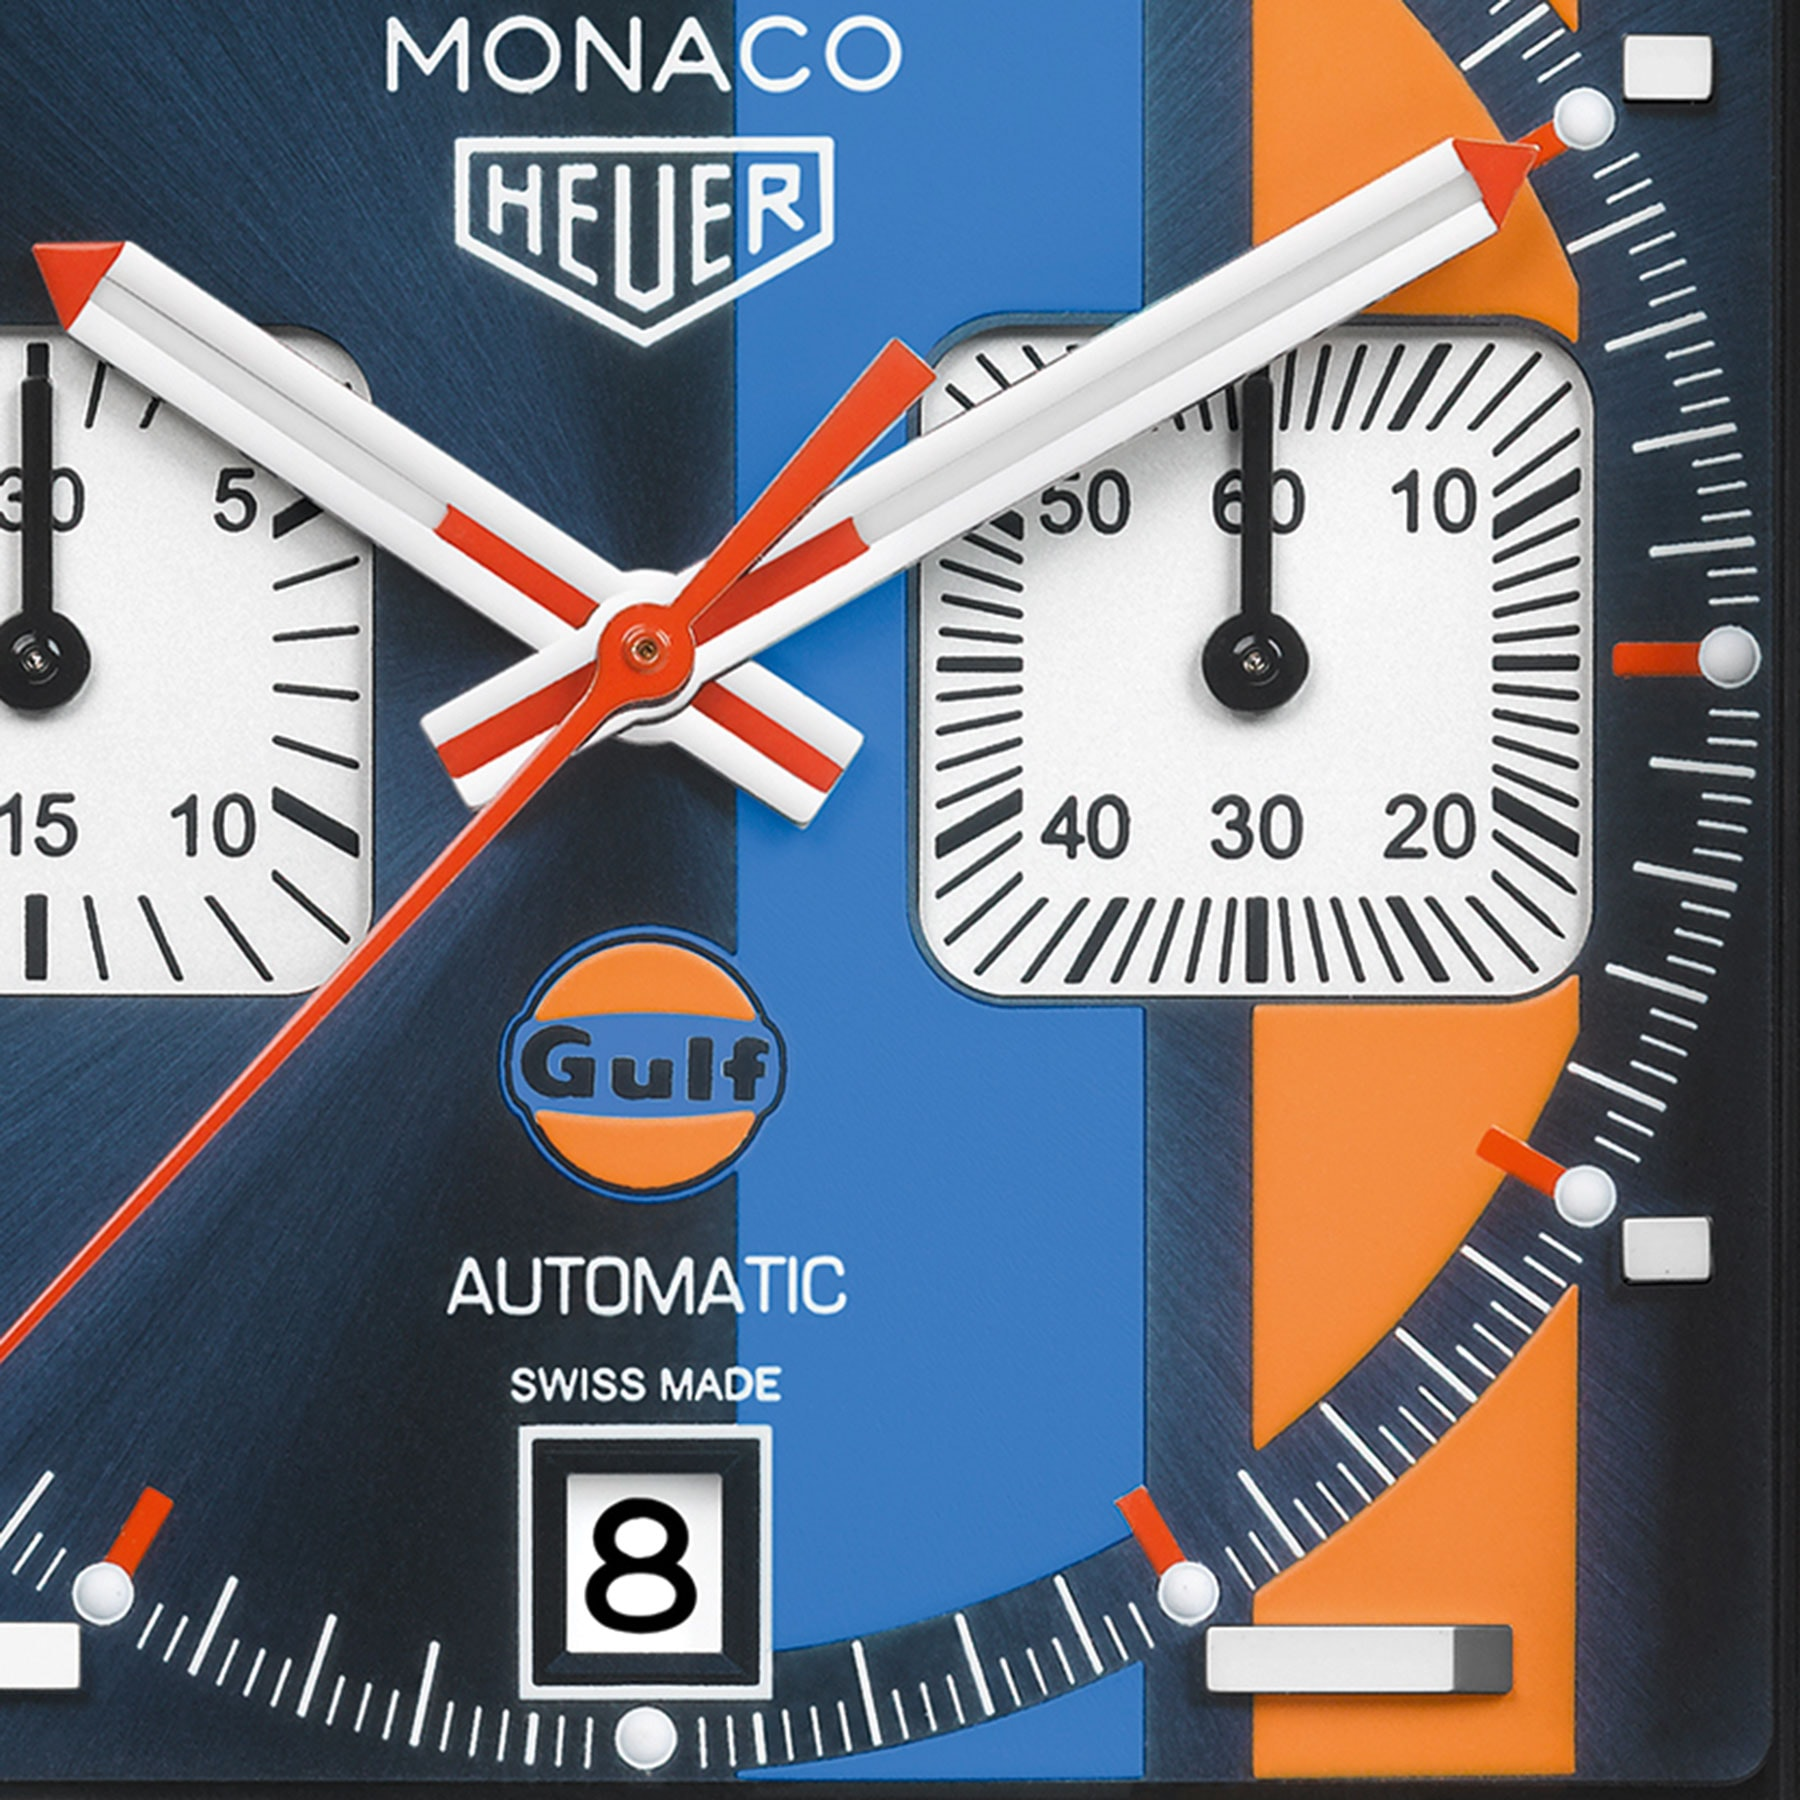 gulf oil limited edition tag heuer  Introducing: The TAG Heuer Monaco Gulf Special Edition For 50th Anniversary Of Gulf Oil Stripes Introducing: The TAG Heuer Monaco Gulf Special Edition For 50th Anniversary Of Gulf Oil Stripes monaco 2